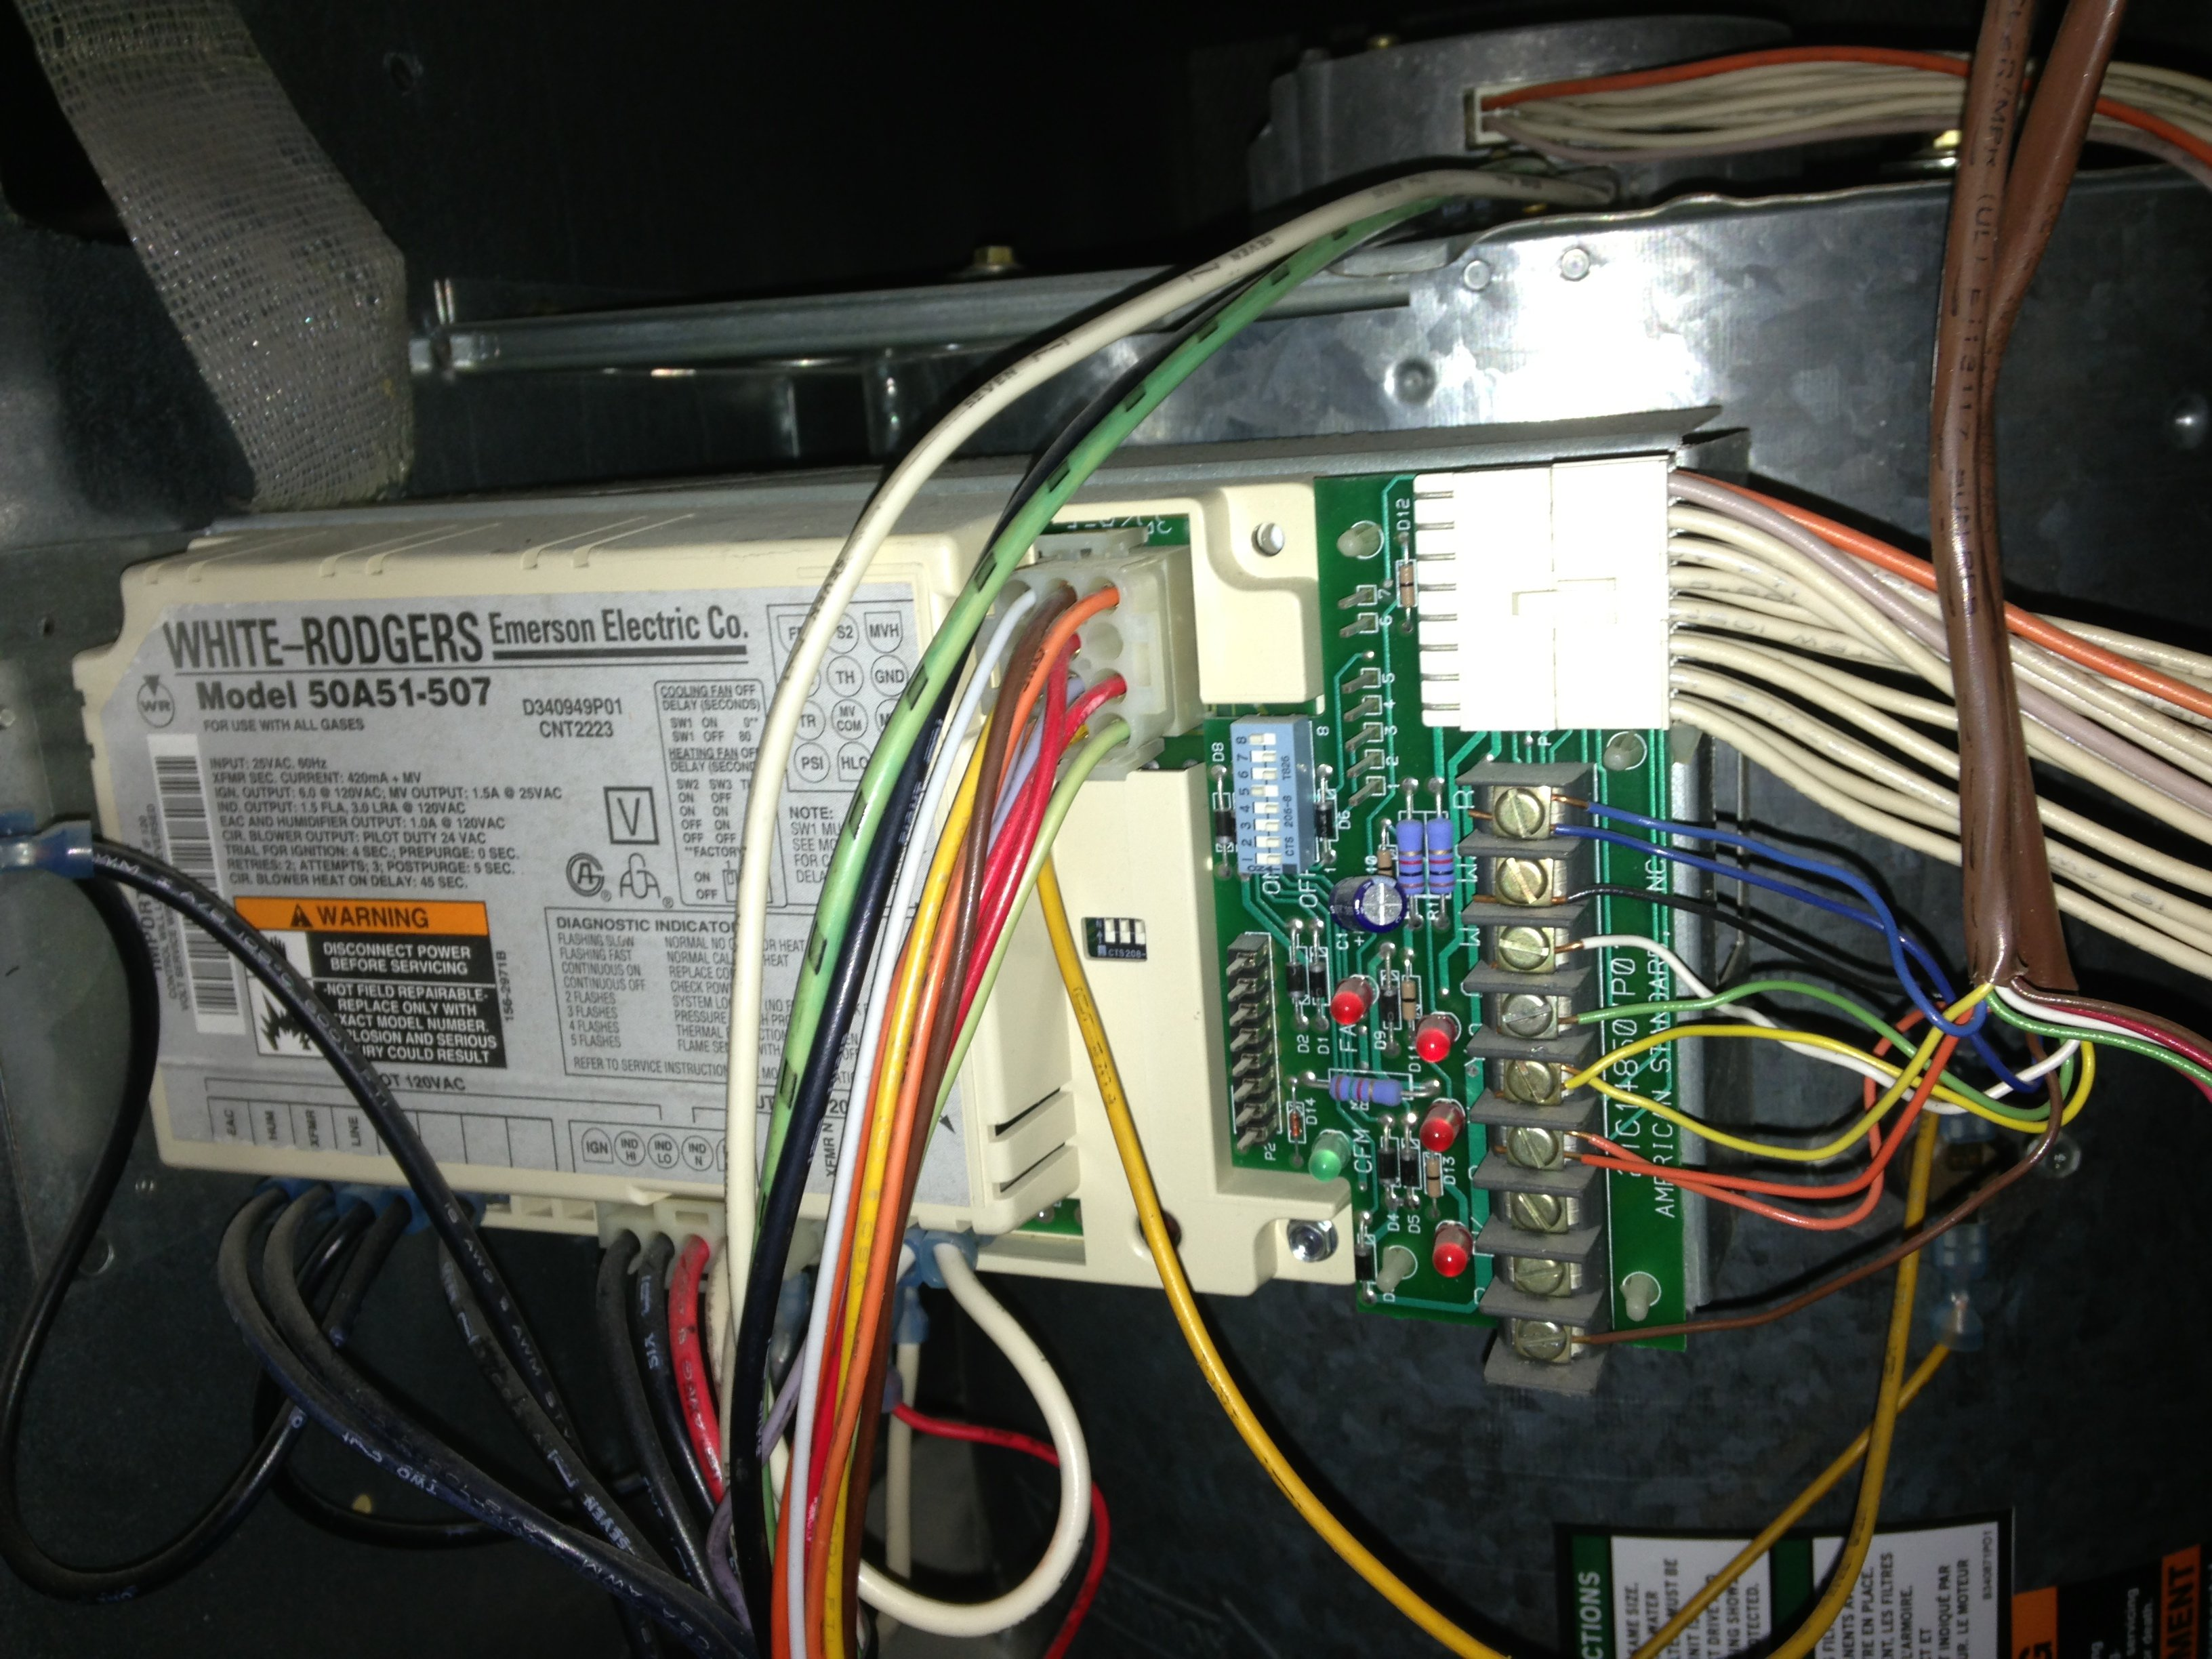 No heat I have a Trane XV 80 gas system with a Rodgers